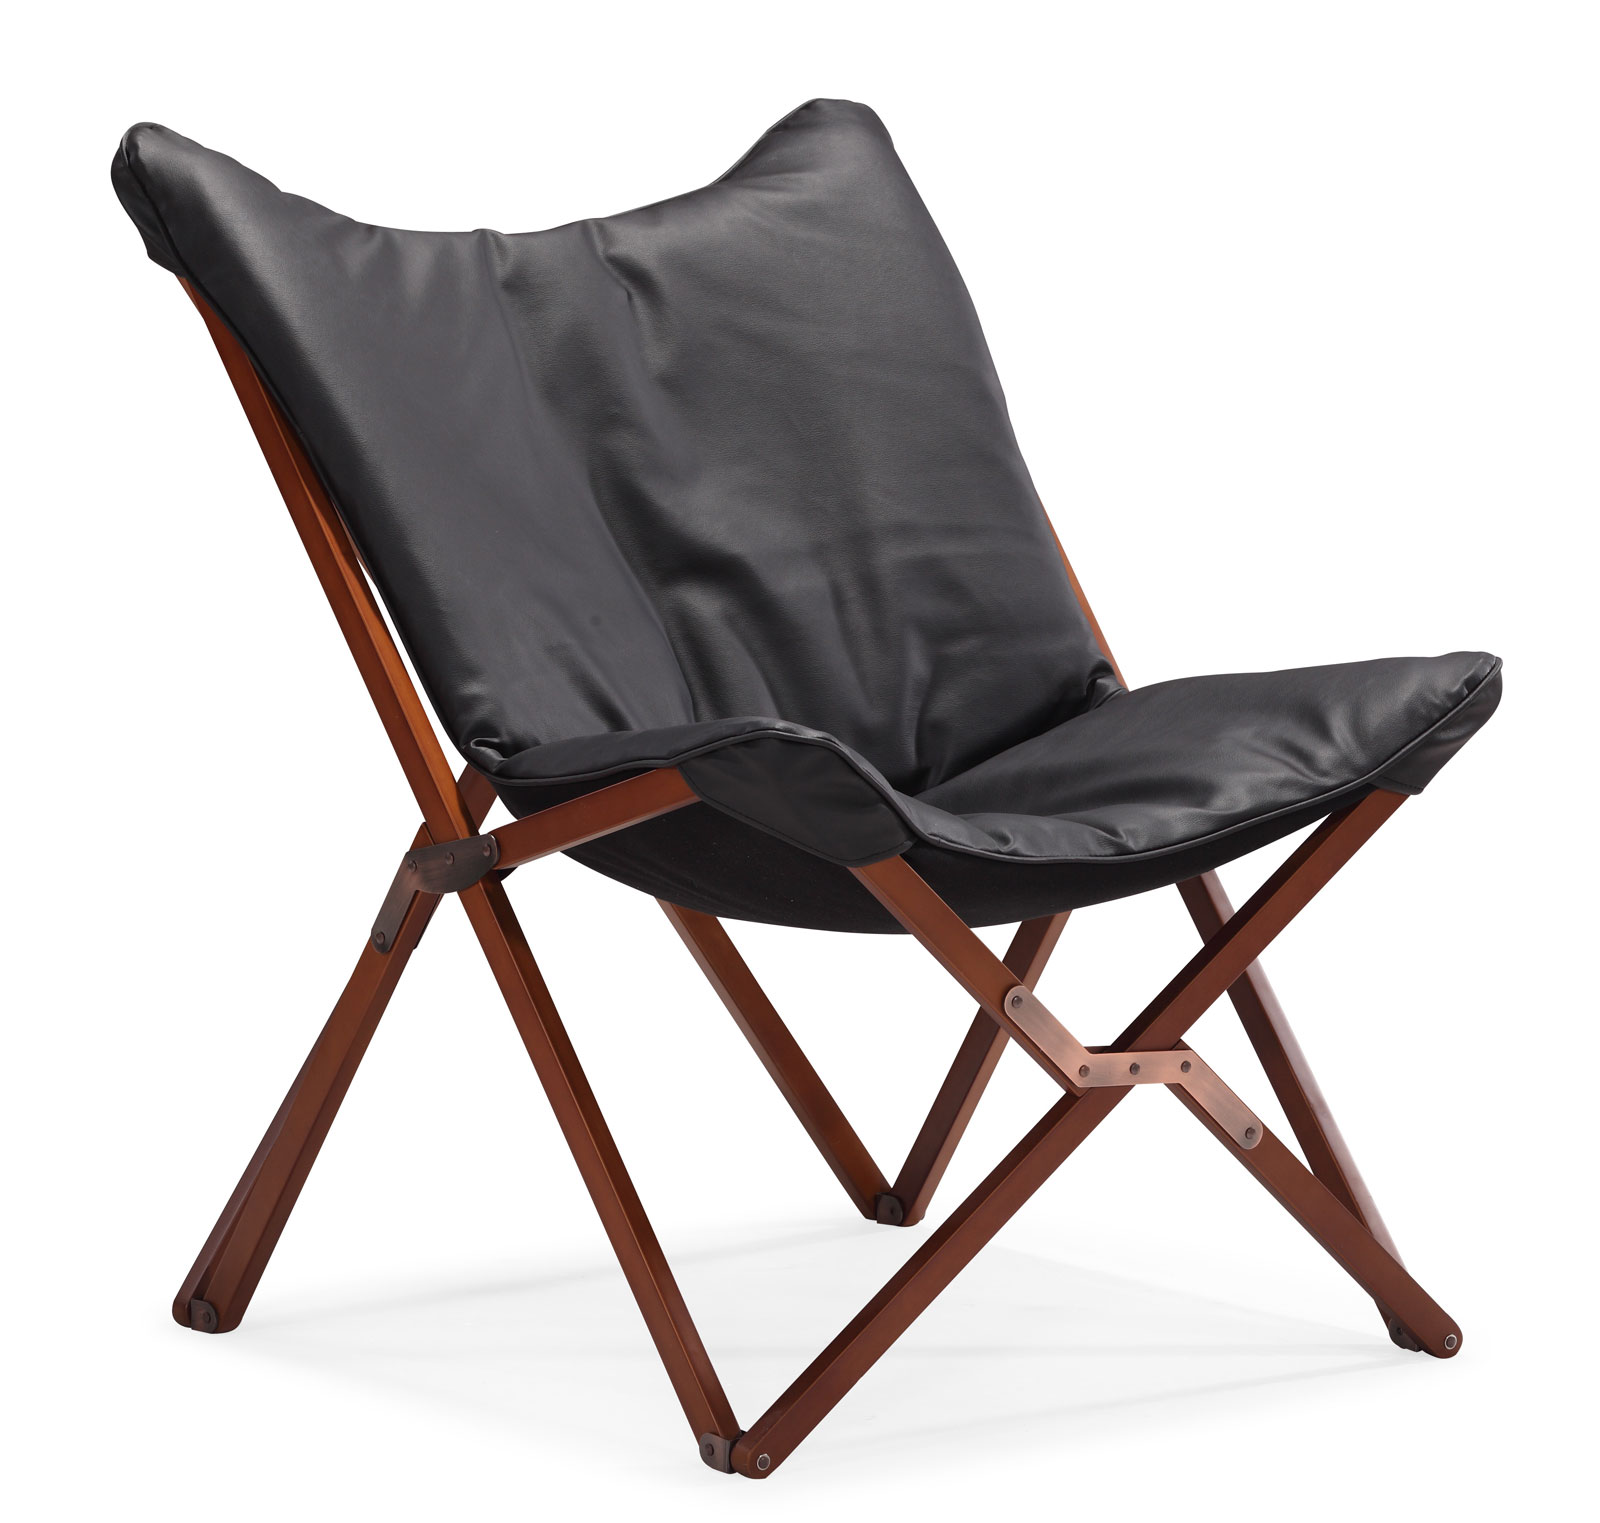 Draper Lounge Chair By Zuo Modern In Accent Chairs